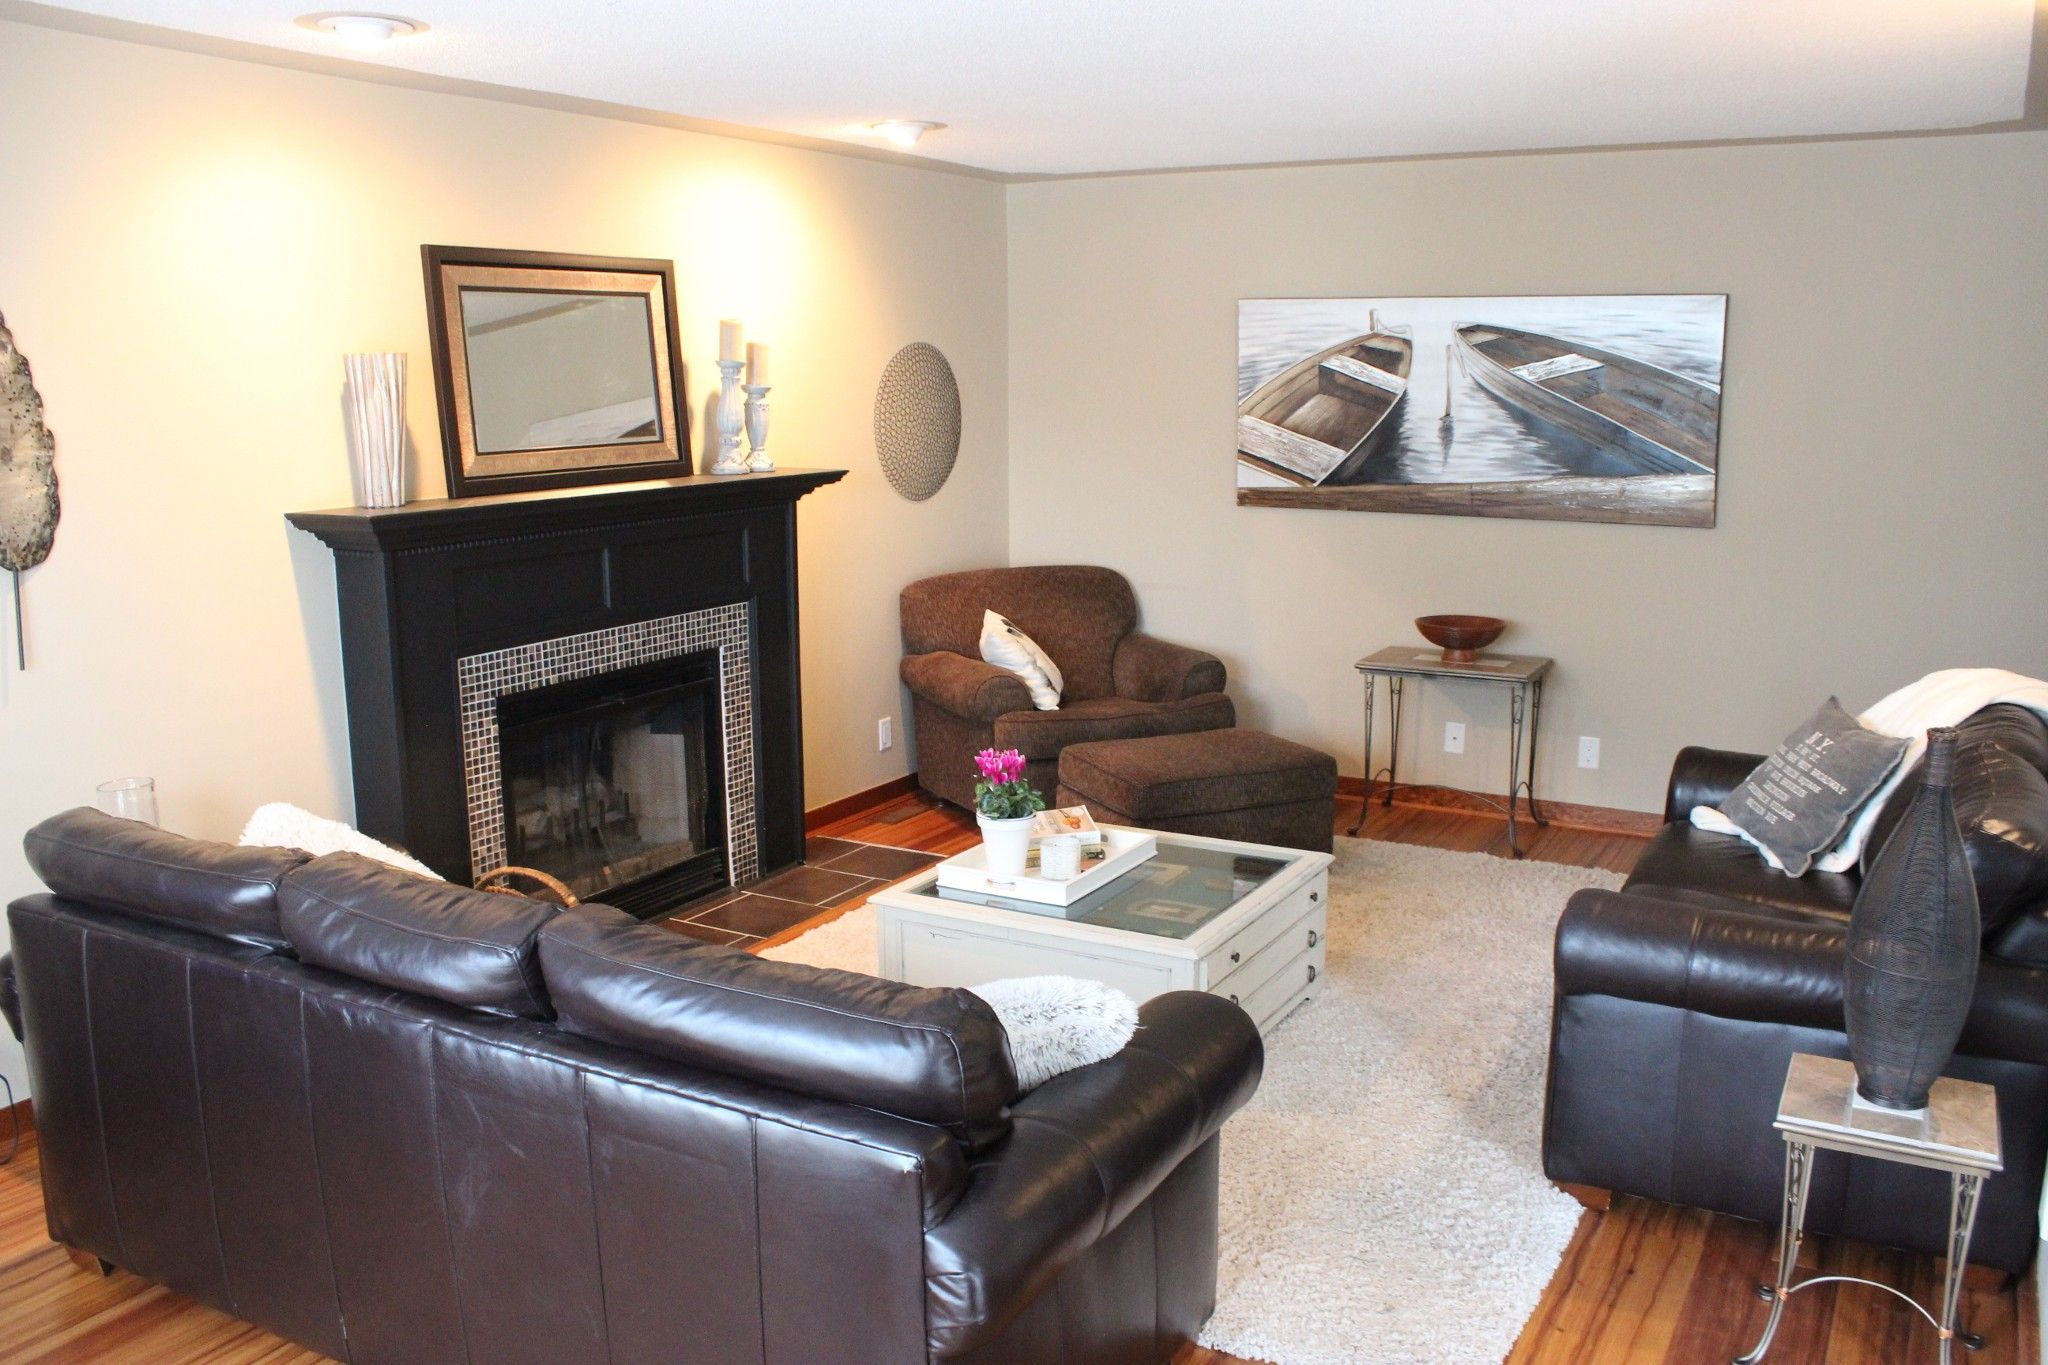 Photo 3: Photos: 3461 Navatanee Drive in Kamloops: South Thompson Valley House for sale : MLS®# 150033